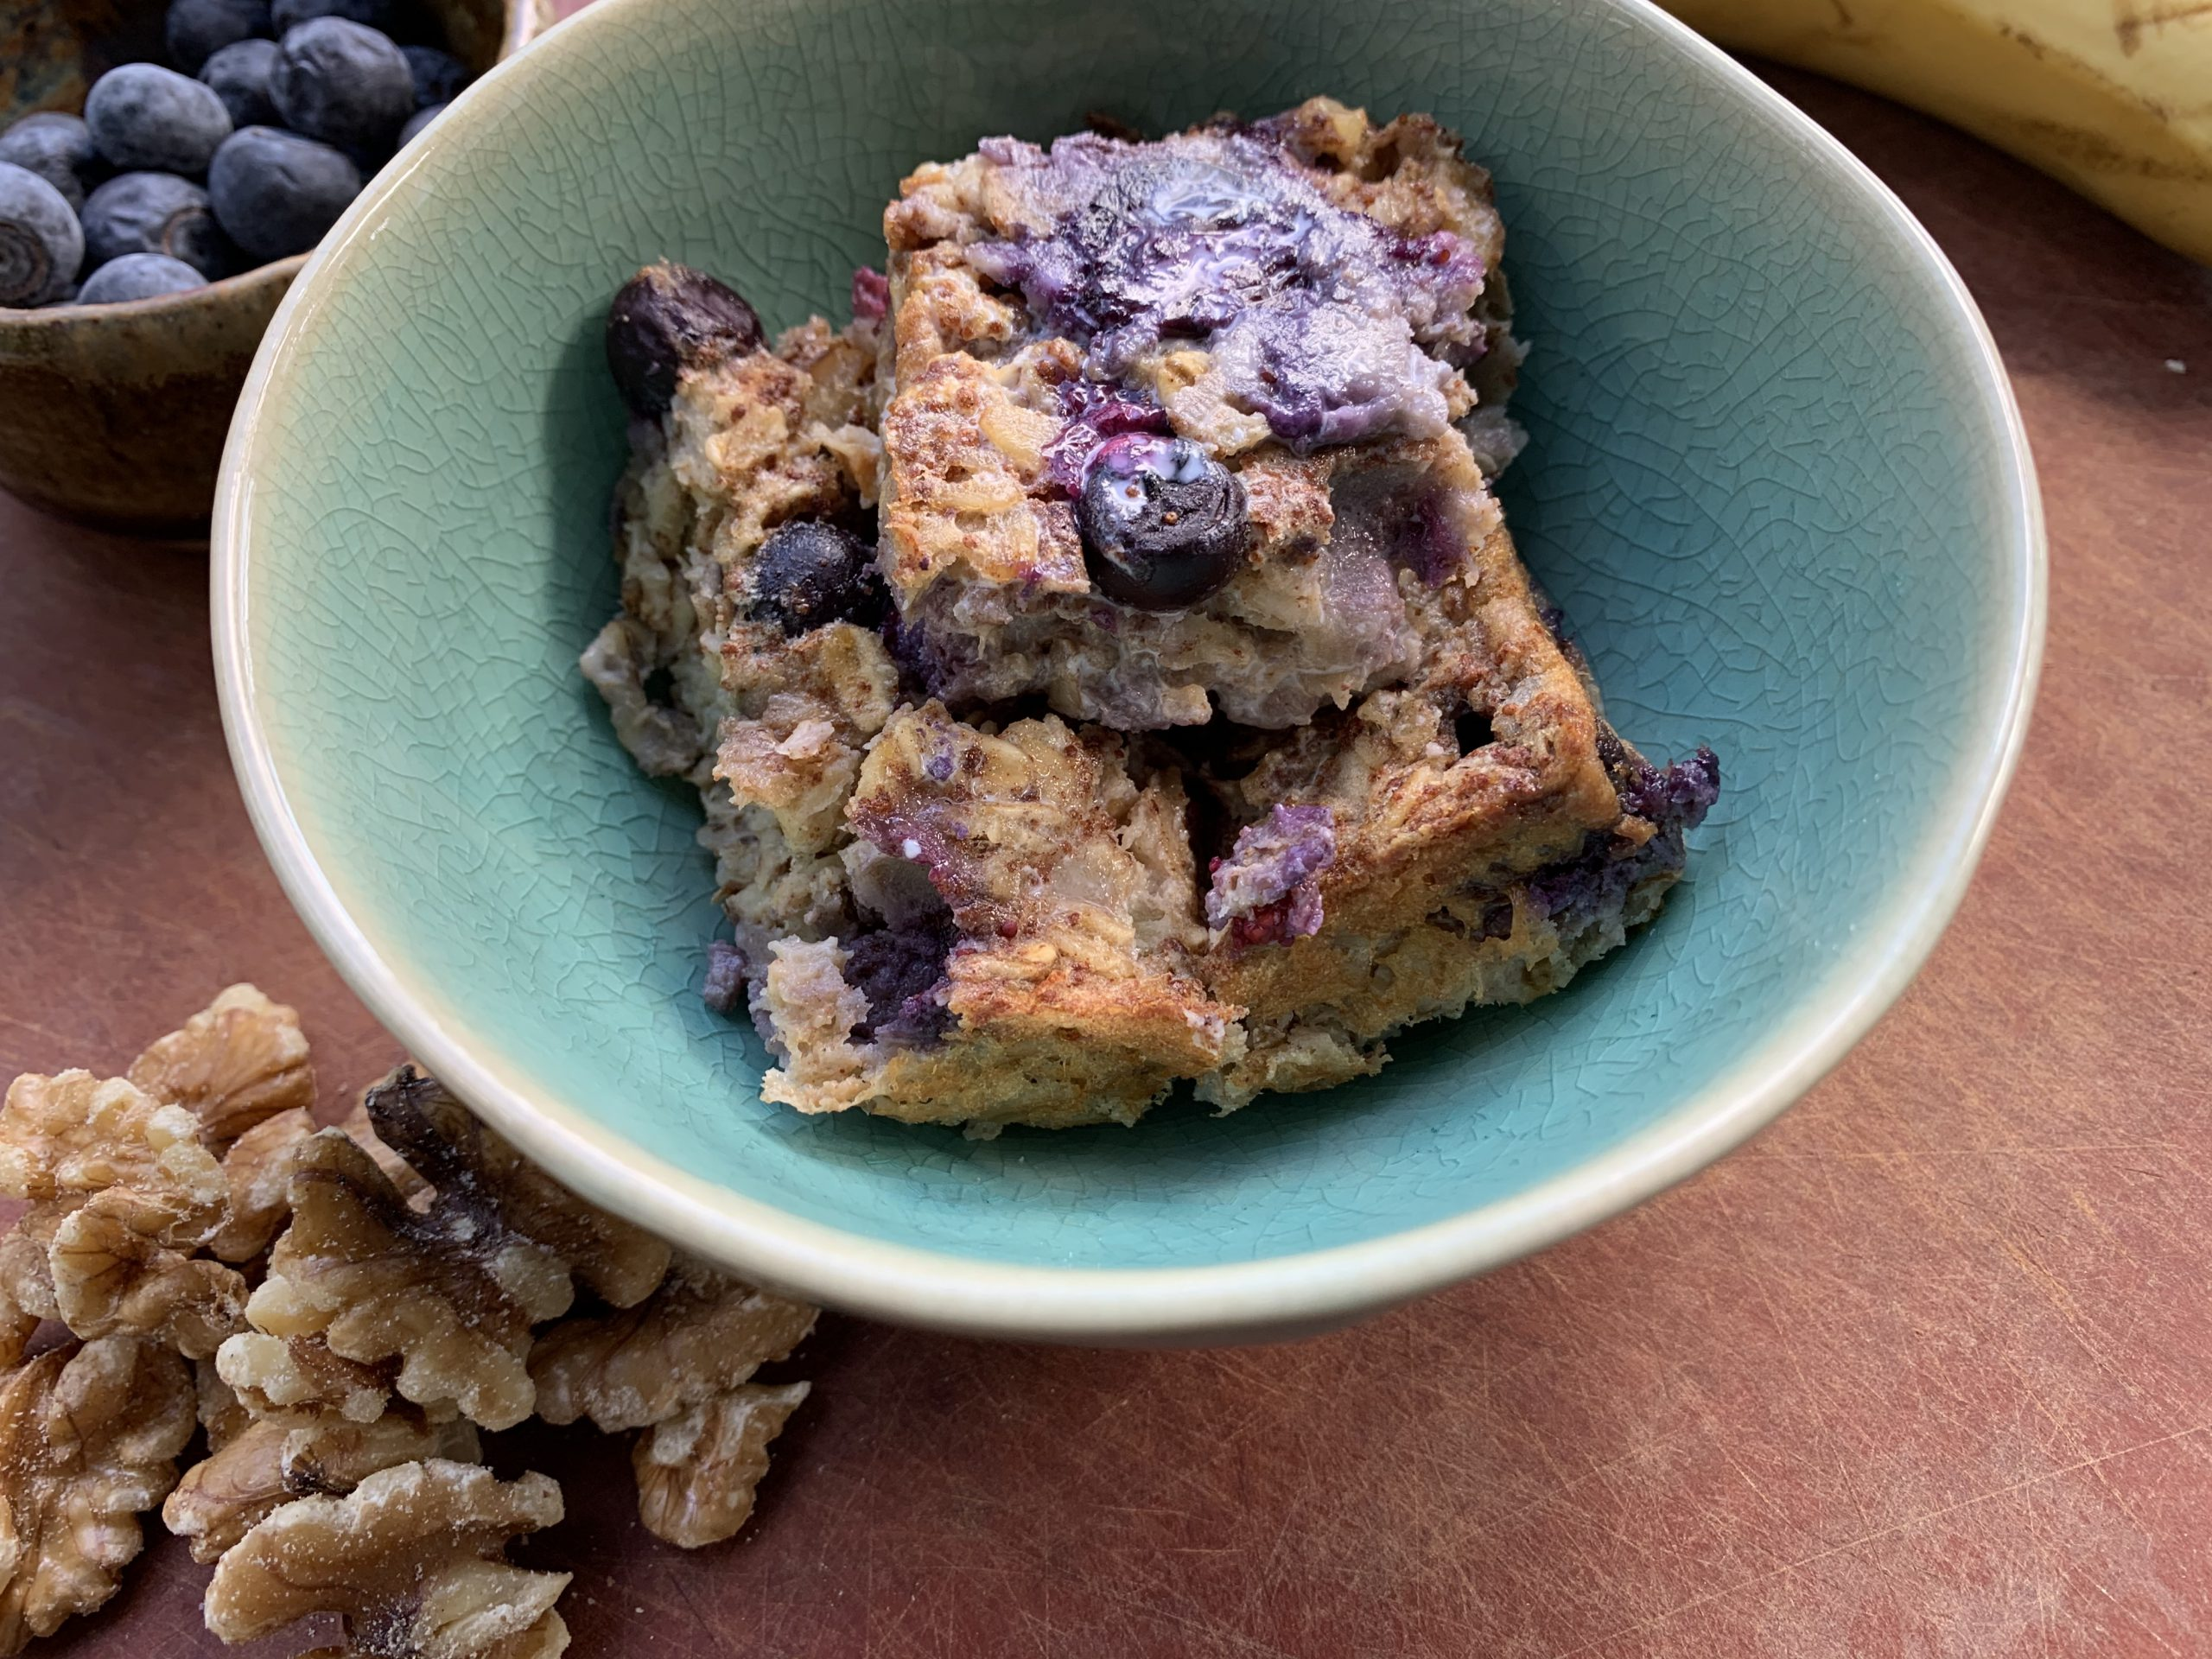 Banana Blueberry Walnut Baked Oatmeal